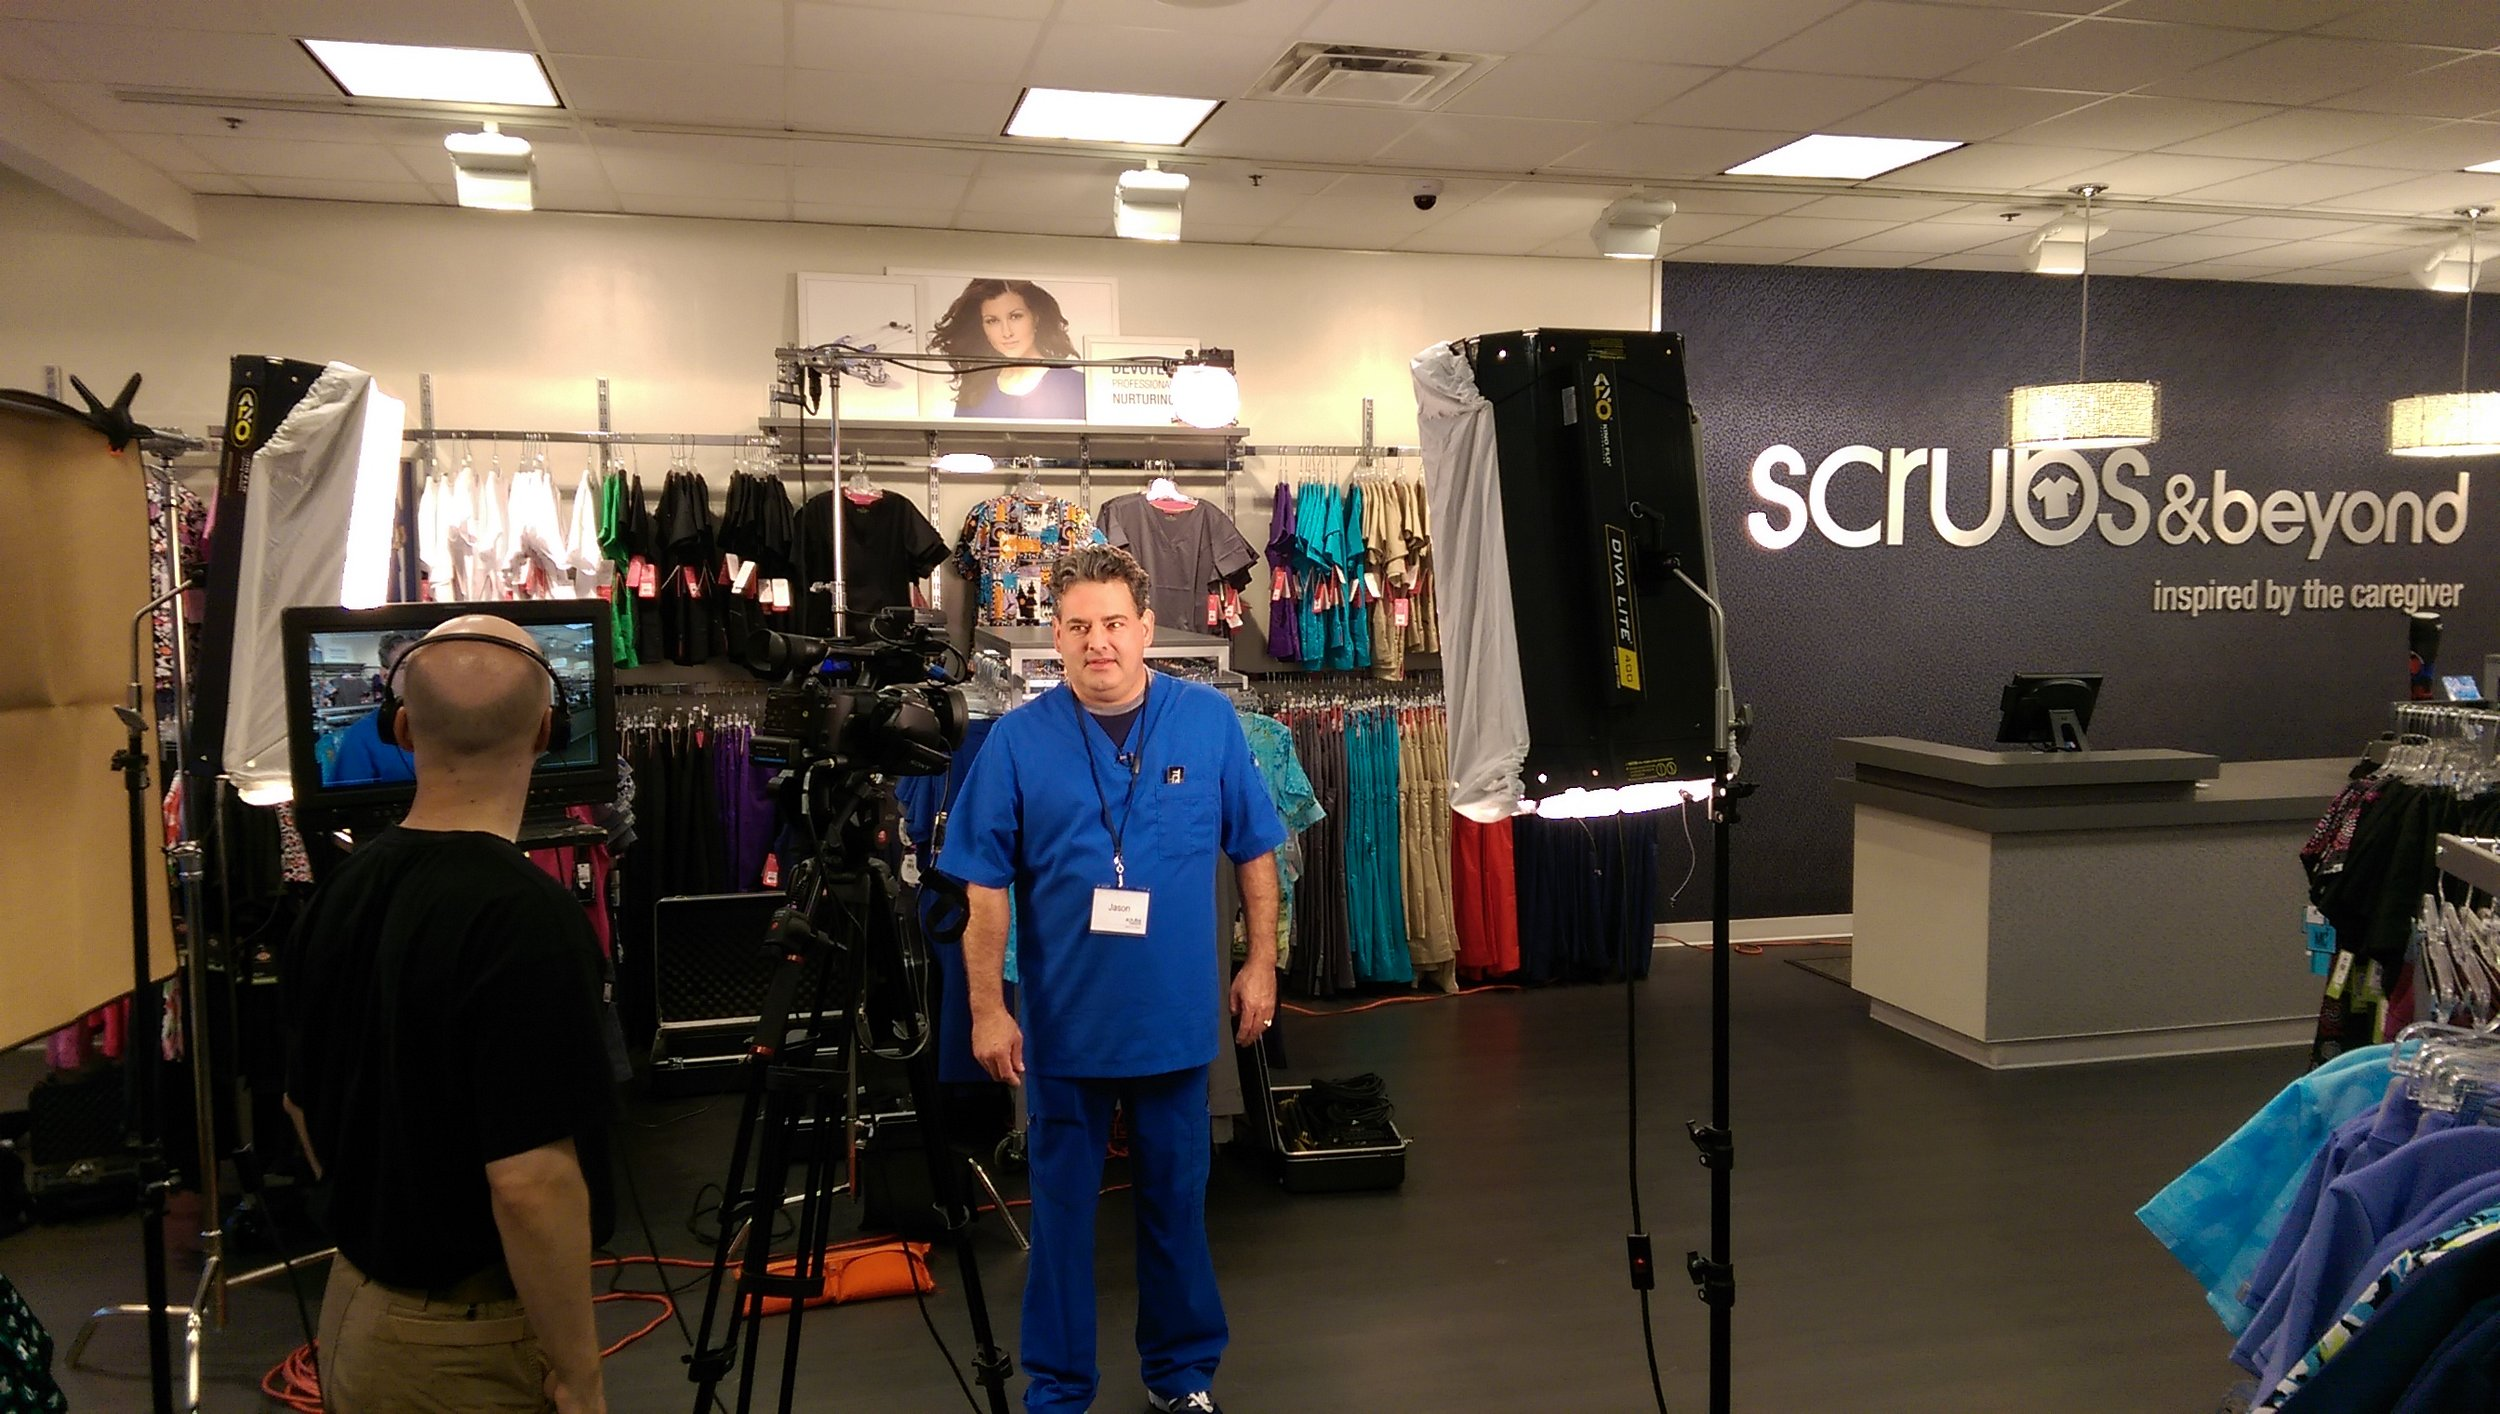 On set with Scrubs and Beyond